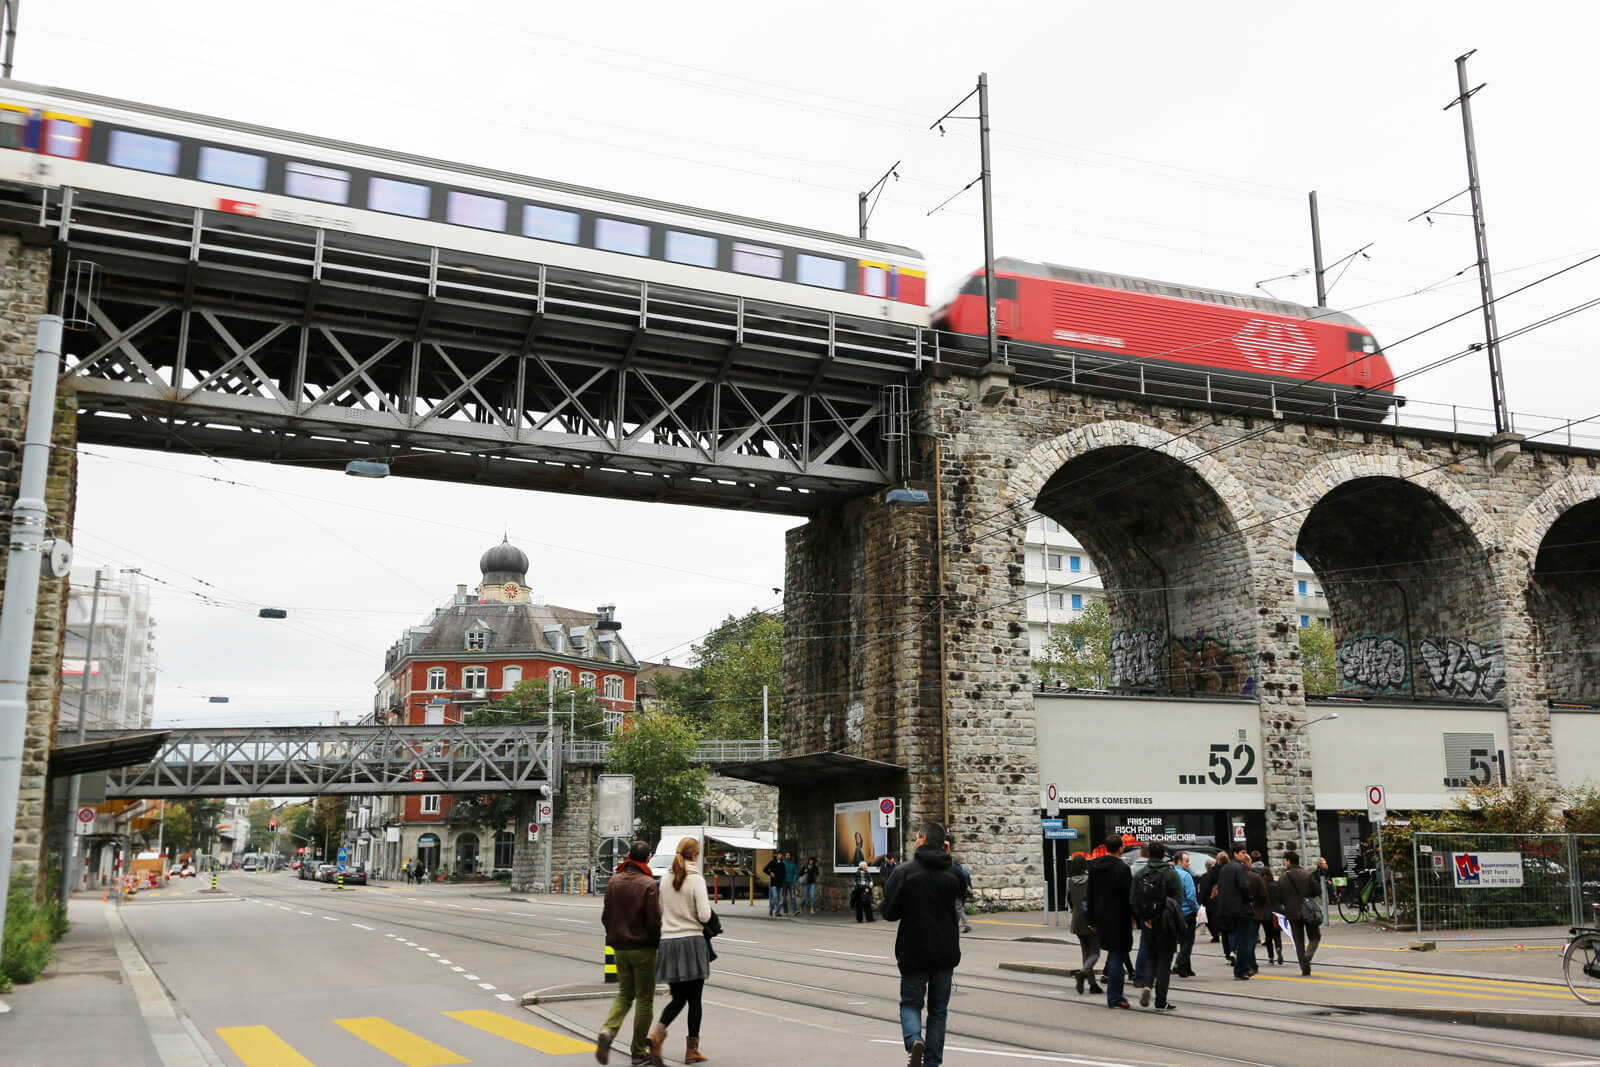 Im Viadukt Shopping Mile with SBB Train Crossing in Zürich, Switzerland